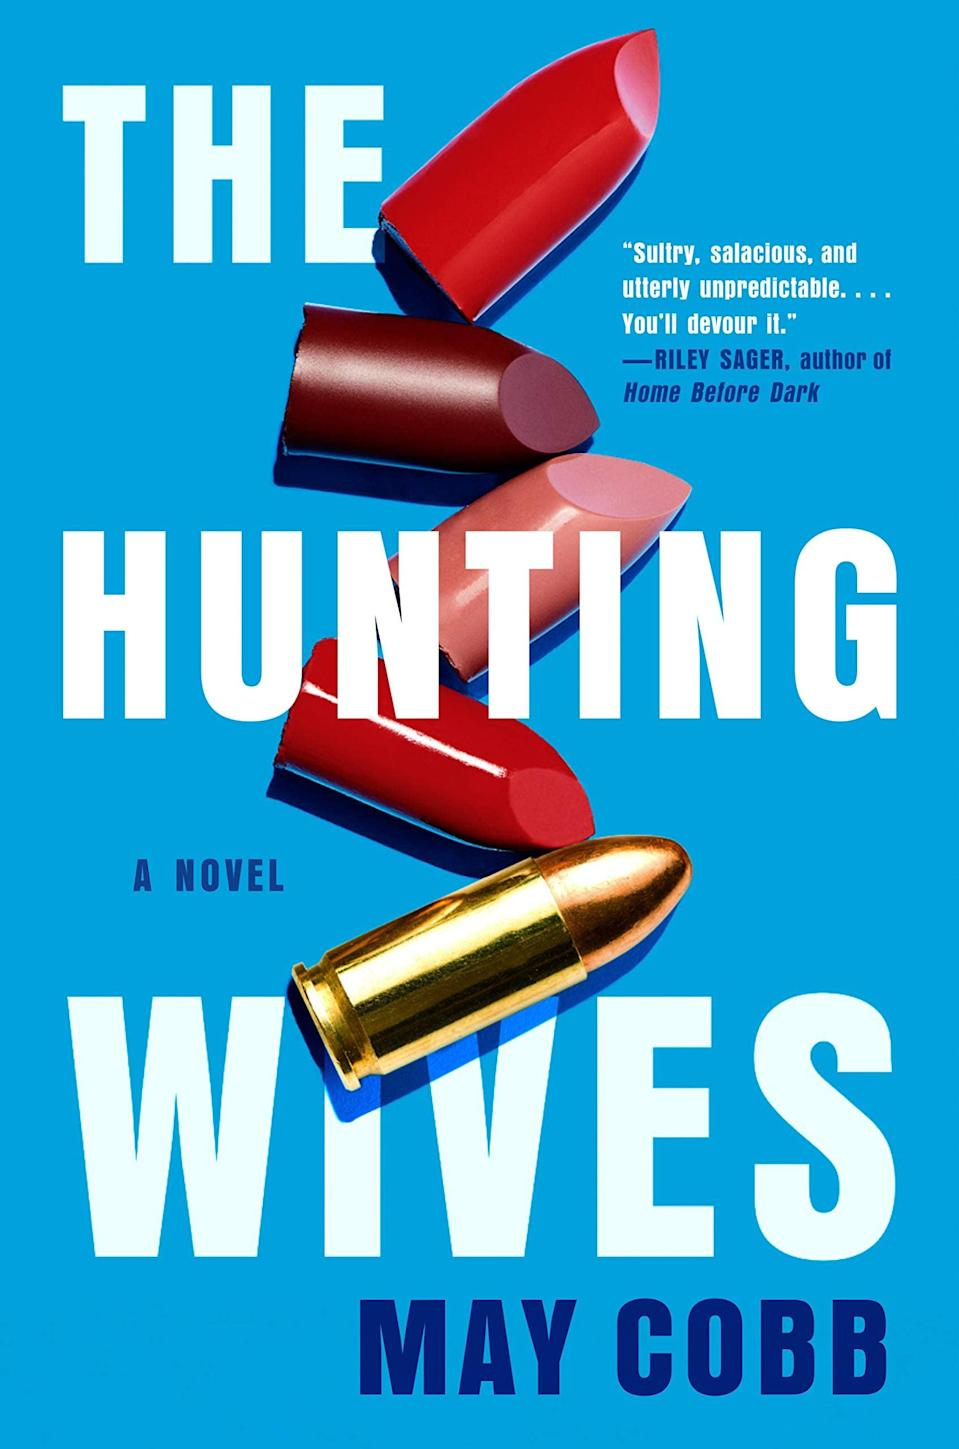 <p>In <span><strong>The Hunting Wives</strong></span> by May Cobb, a woman named Sophie O'Neill moves from Chicago to a small town in Texas with her husband and son. Soon, she falls in with a clique of women who love martinis and target practice. But there's more to the Hunting Wives than just sharing drinks and gossip - these women can be deadly, as Sophie finds out firsthand when a teenage girl is discovered dead in the woods. </p> <p><em>Out May 18</em></p>